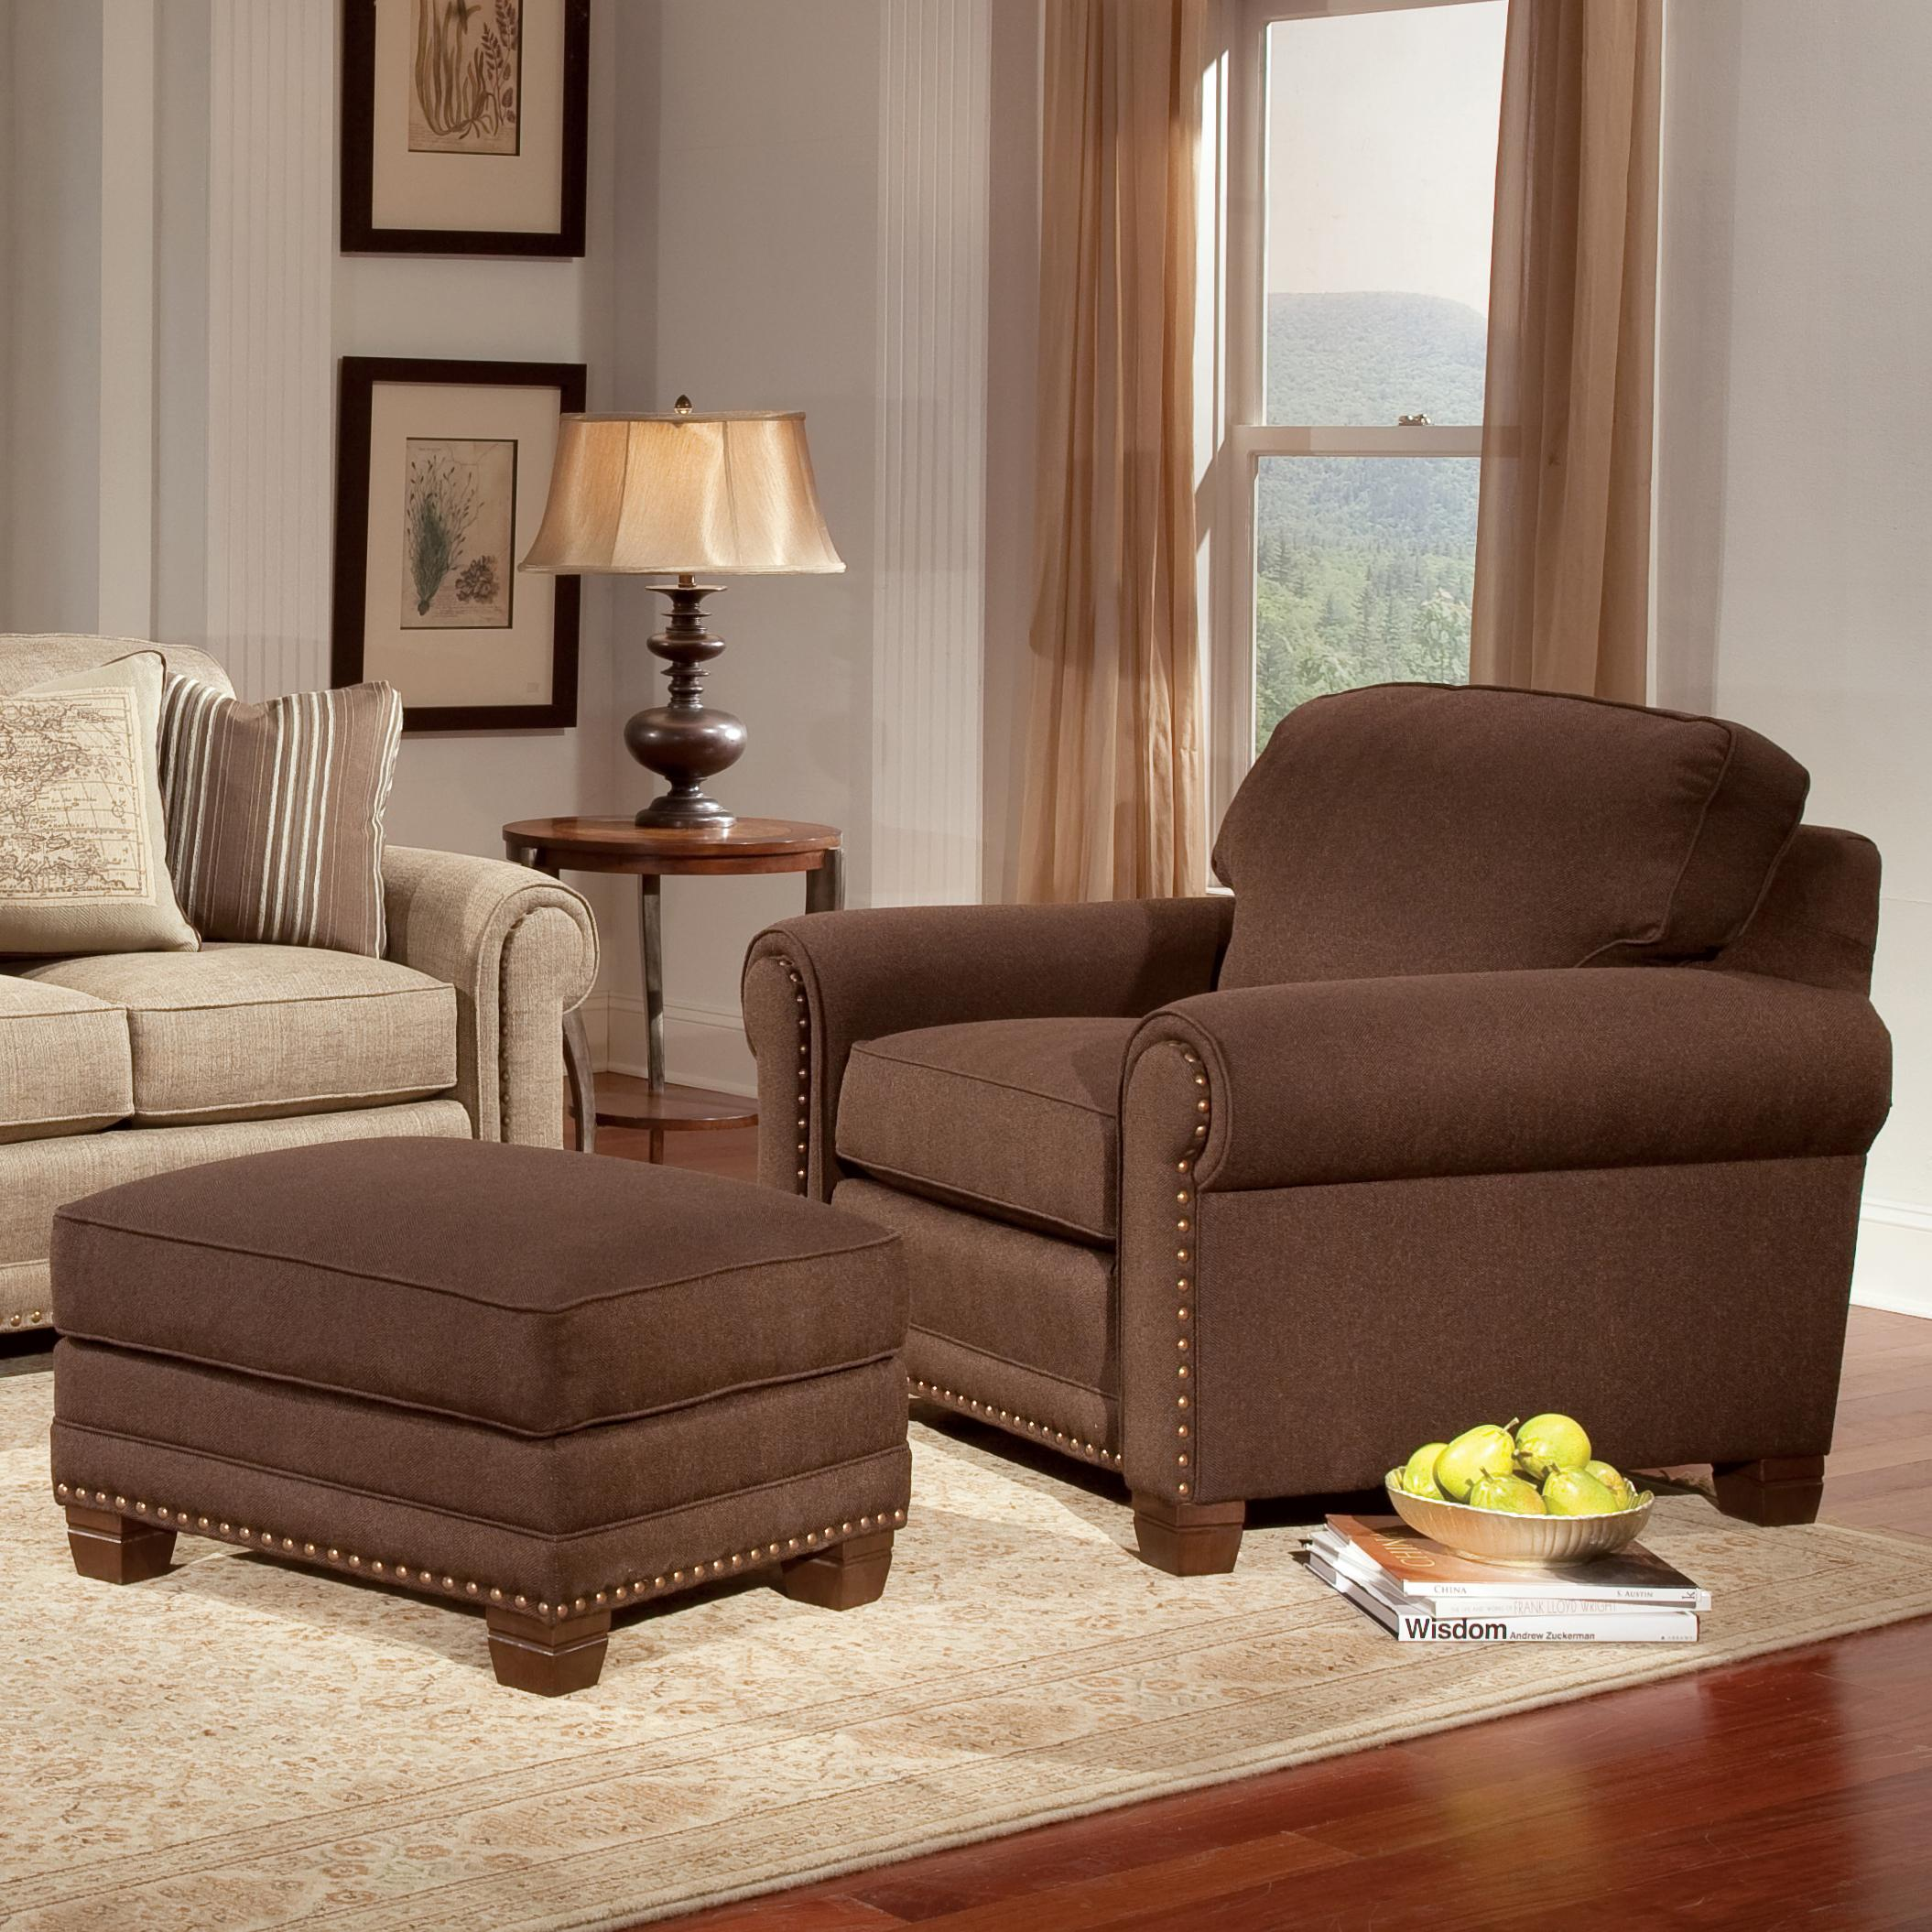 Traditional Chair and Ottoman